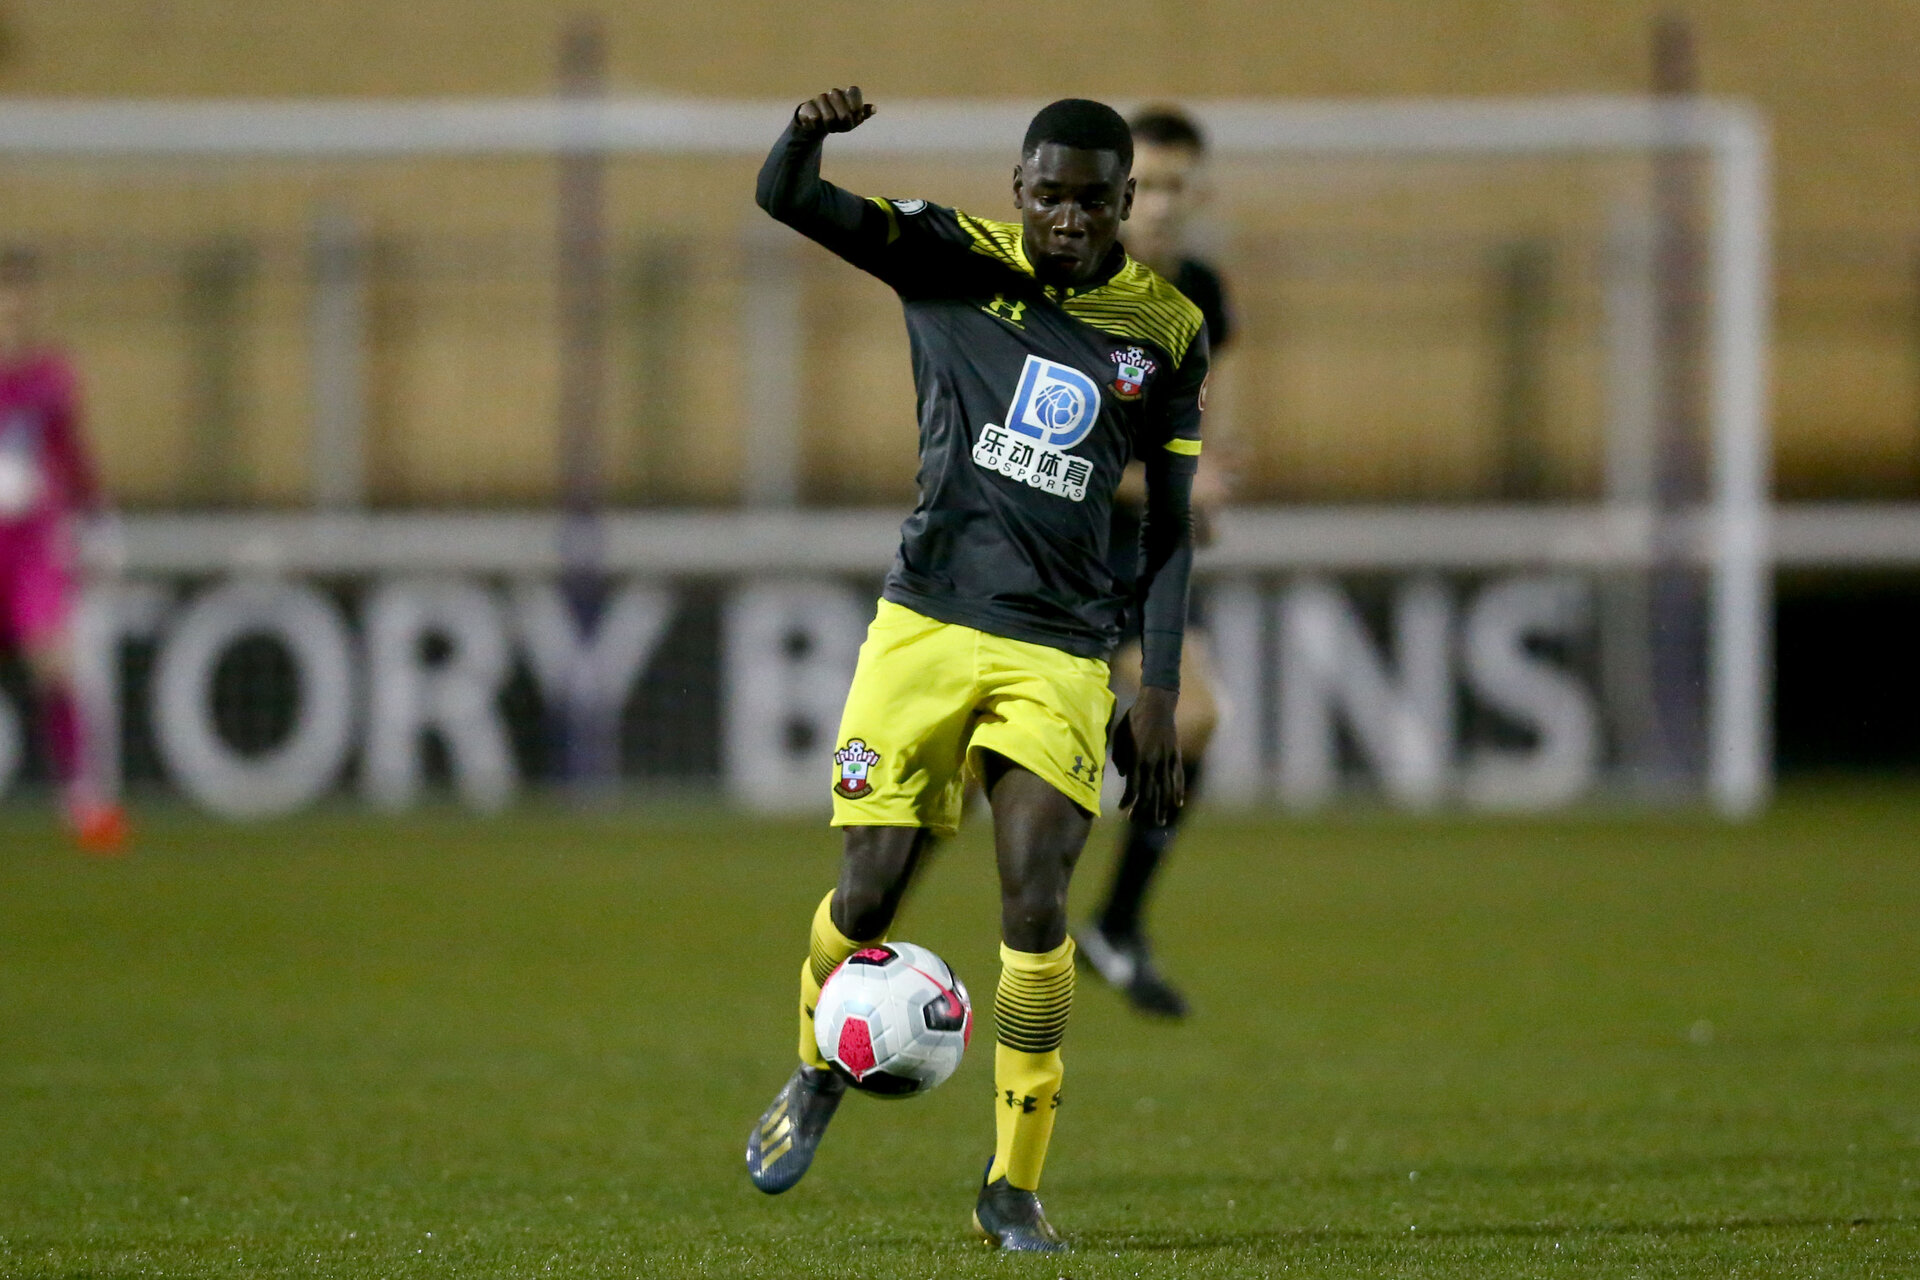 LOUGHBOUROUGH, ENGLAND - DECEMBER 10: Lucas Defise during Premier League International Cup match between Derby County and Southampton at Loughborough University Stadium on December 10 2019 in Loughborough, England (Photo by Isabelle Field/Southampton FC via Getty Images)